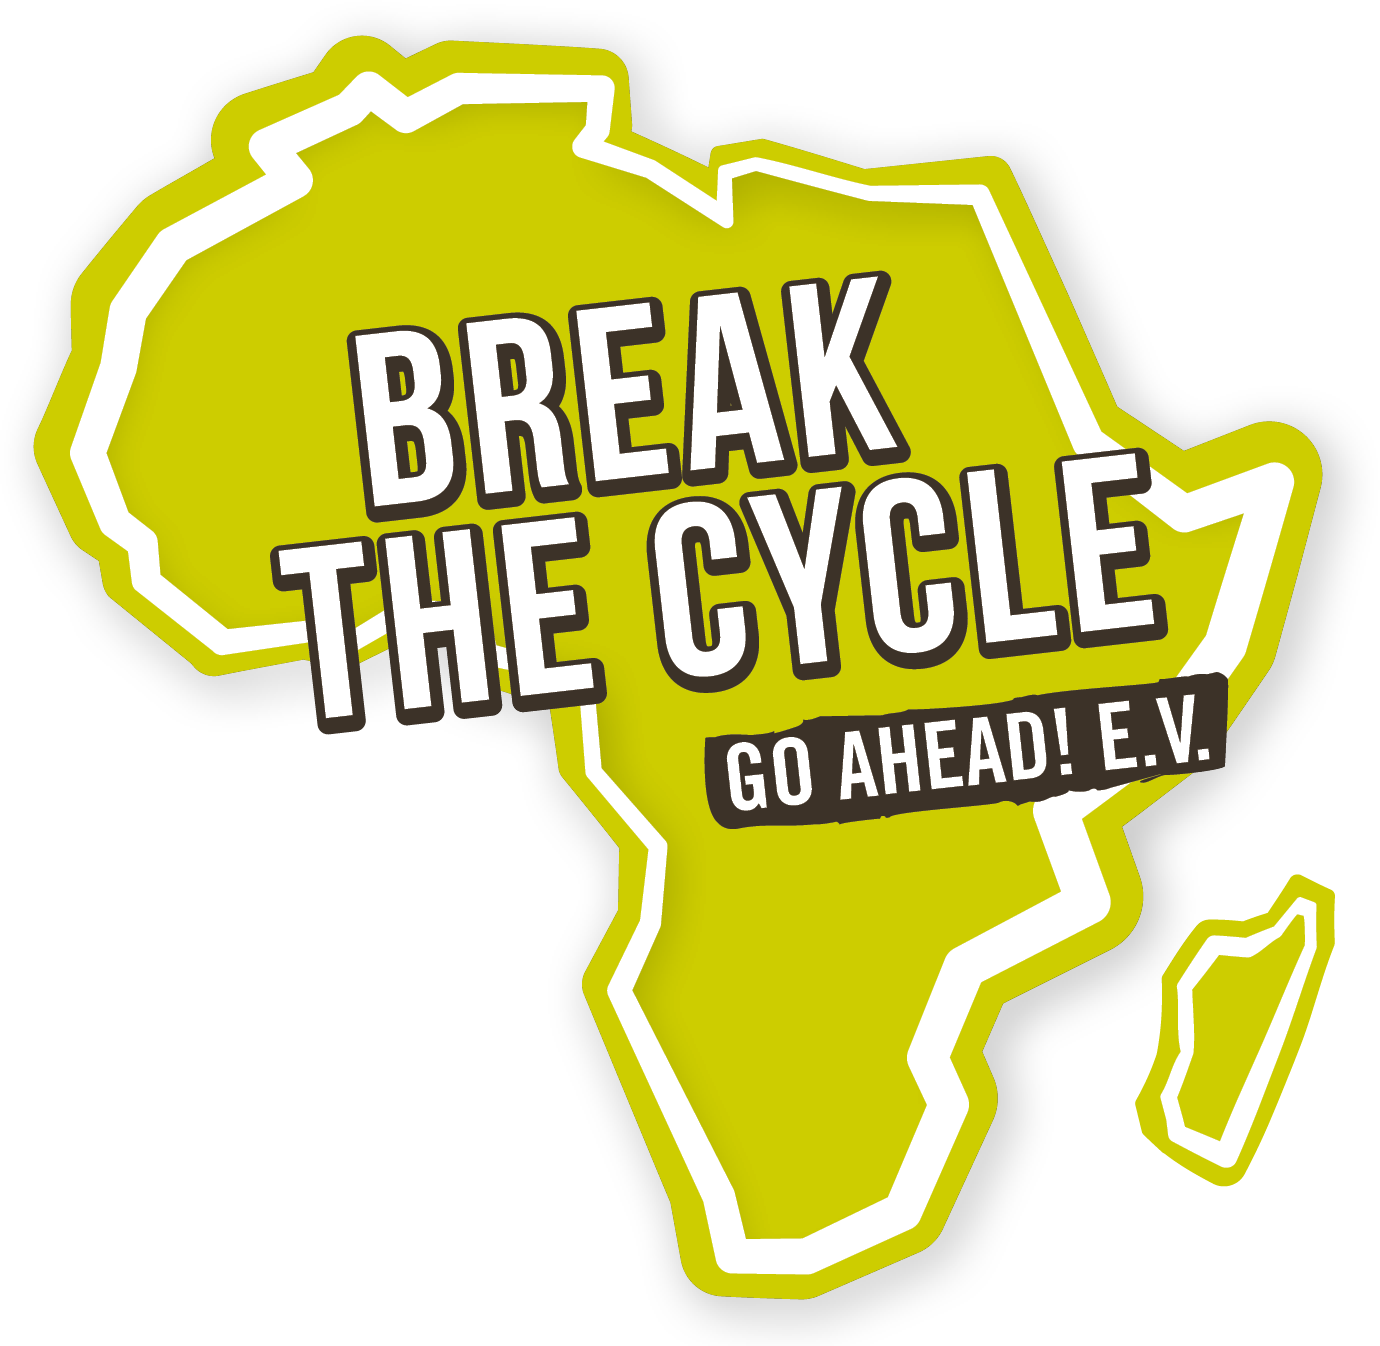 BreakTheCycle by Go Ahead!